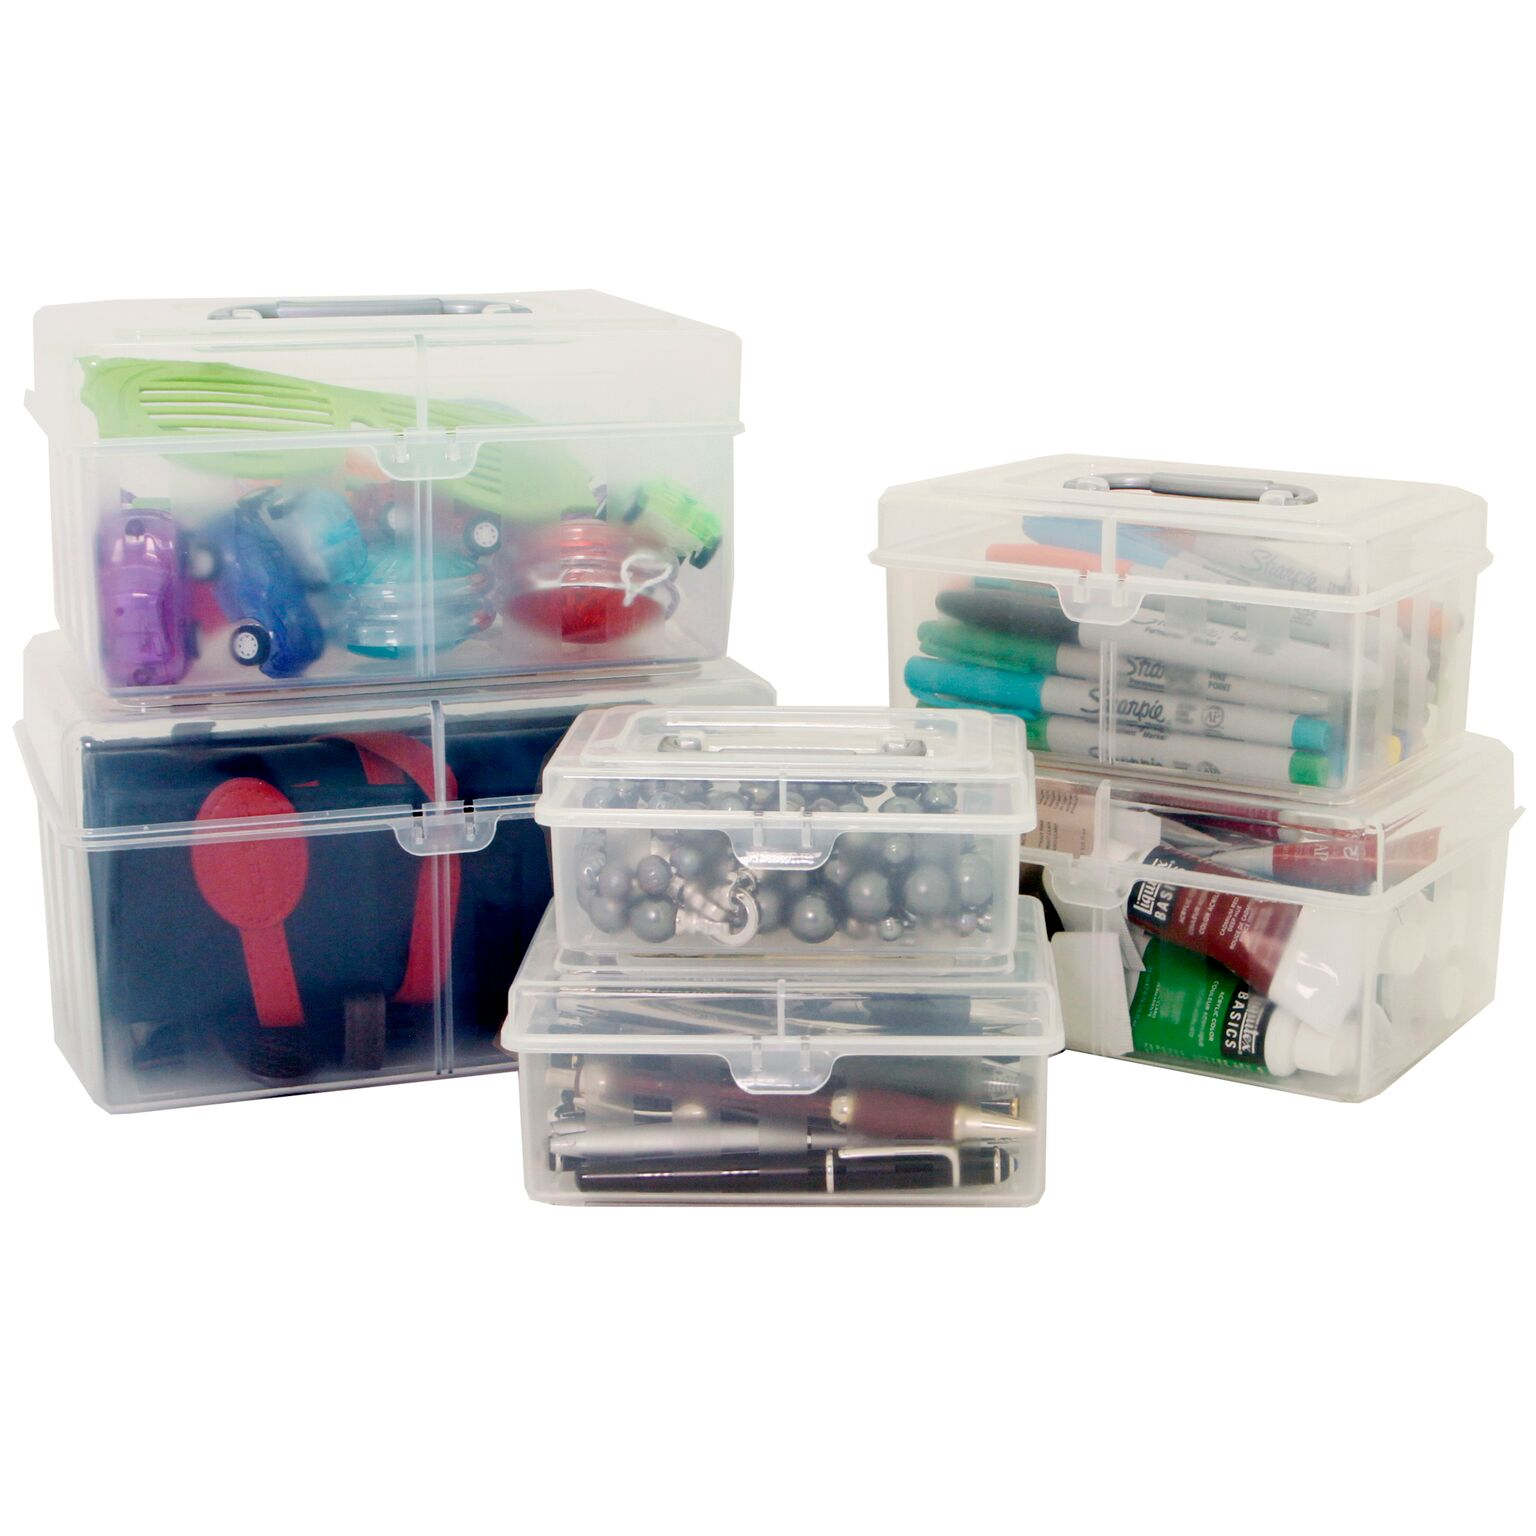 Craft Storage Organizer Containers with Handle - Set of 6 PCS Craft Bead School Supply Sewing Art Organizer Containers